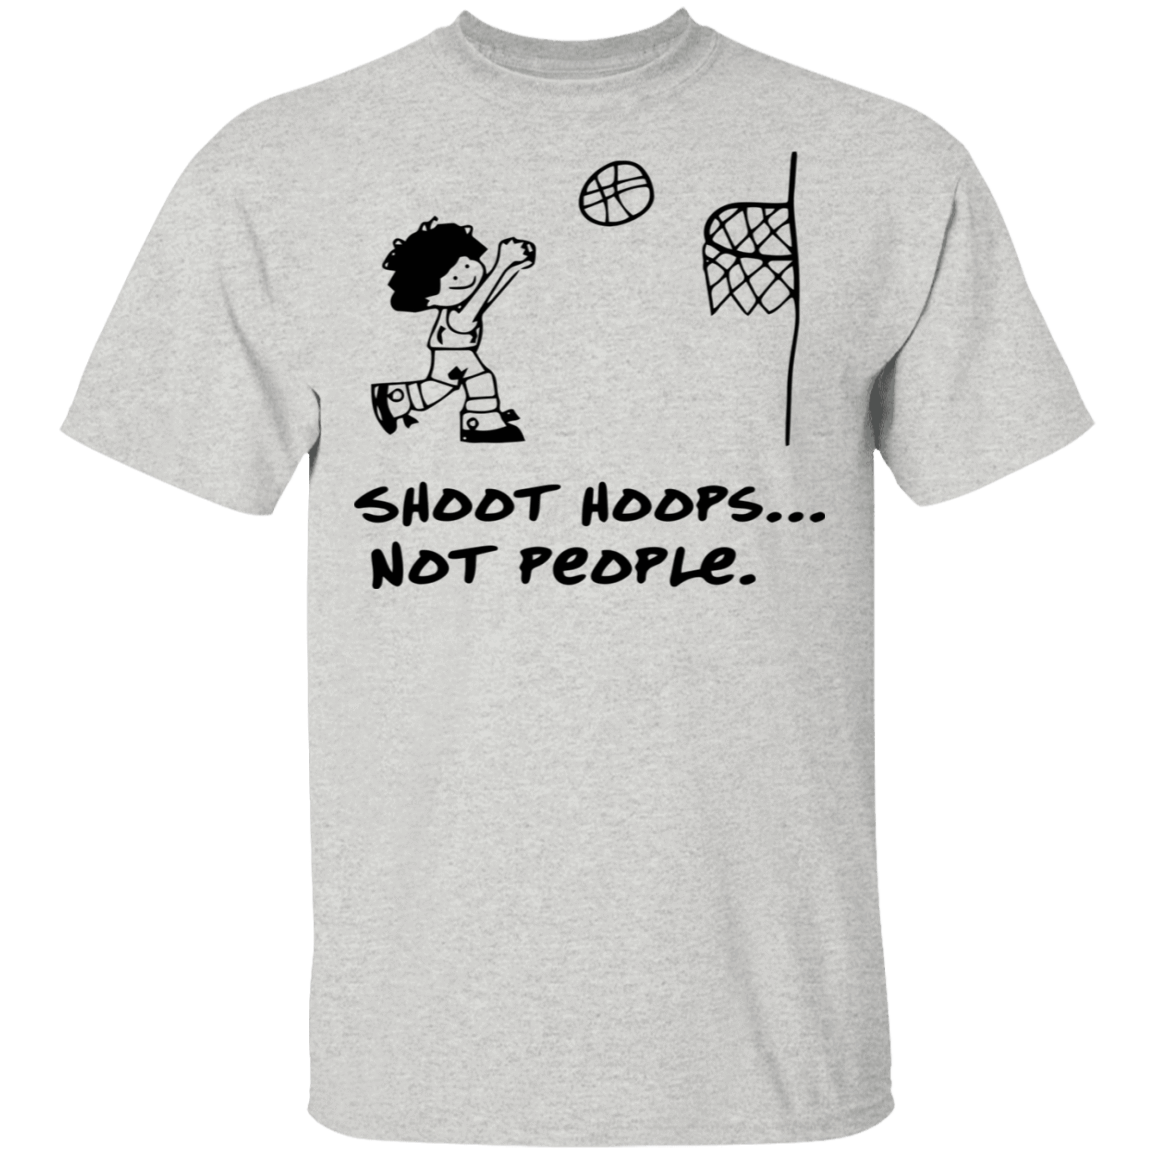 Shoot Hoops Not People T-Shirts, Hoodies, Tank 22-2475-79279842-12568 - Tee Ript